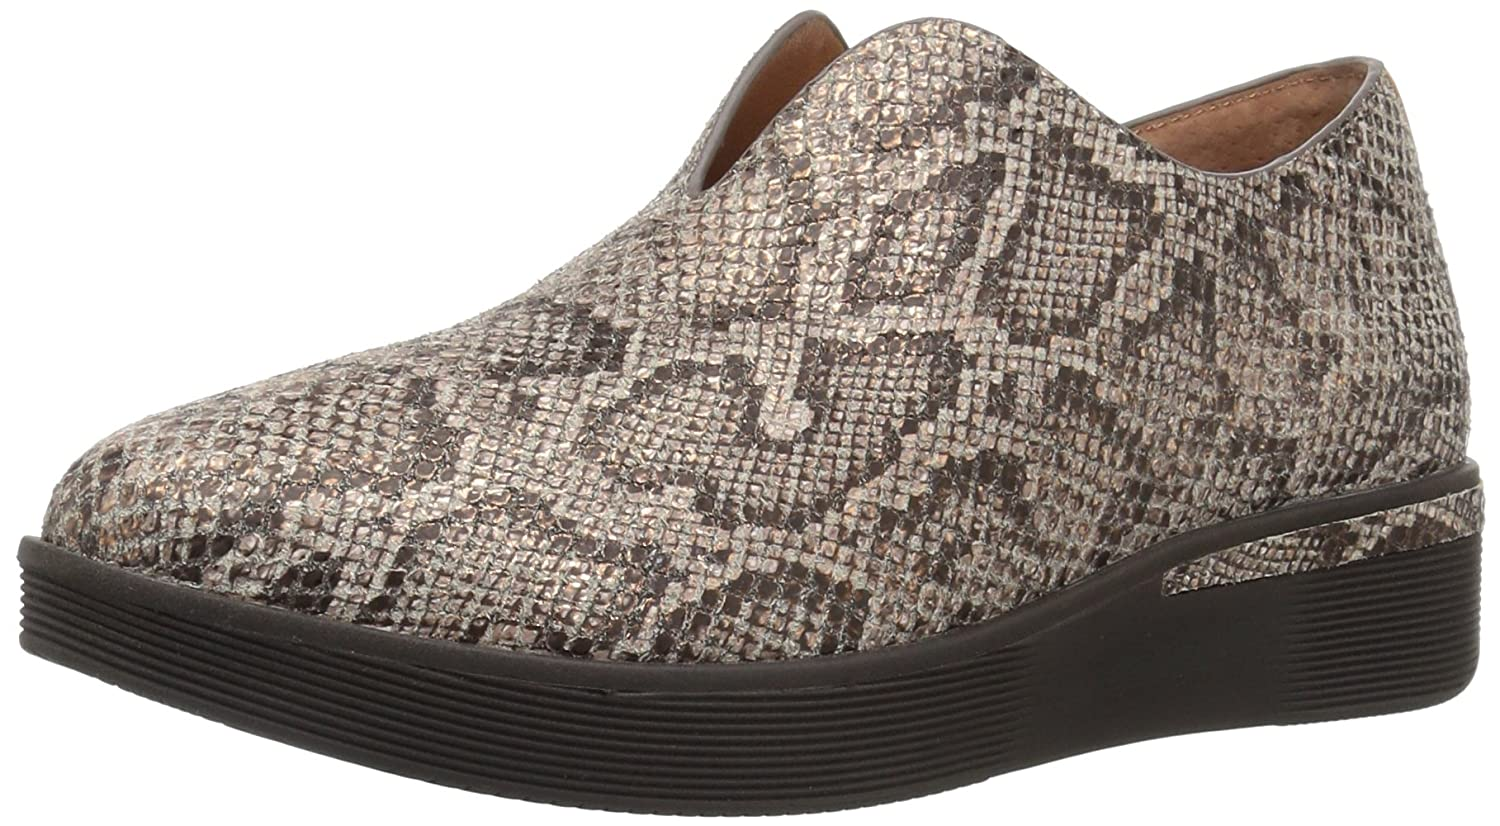 Gentle Souls by Kenneth Cole Hanna Platform Slip ON Fashion Sneaker- Leather Shoe B072637TL8 7.5 B(M) US|Rose Gold